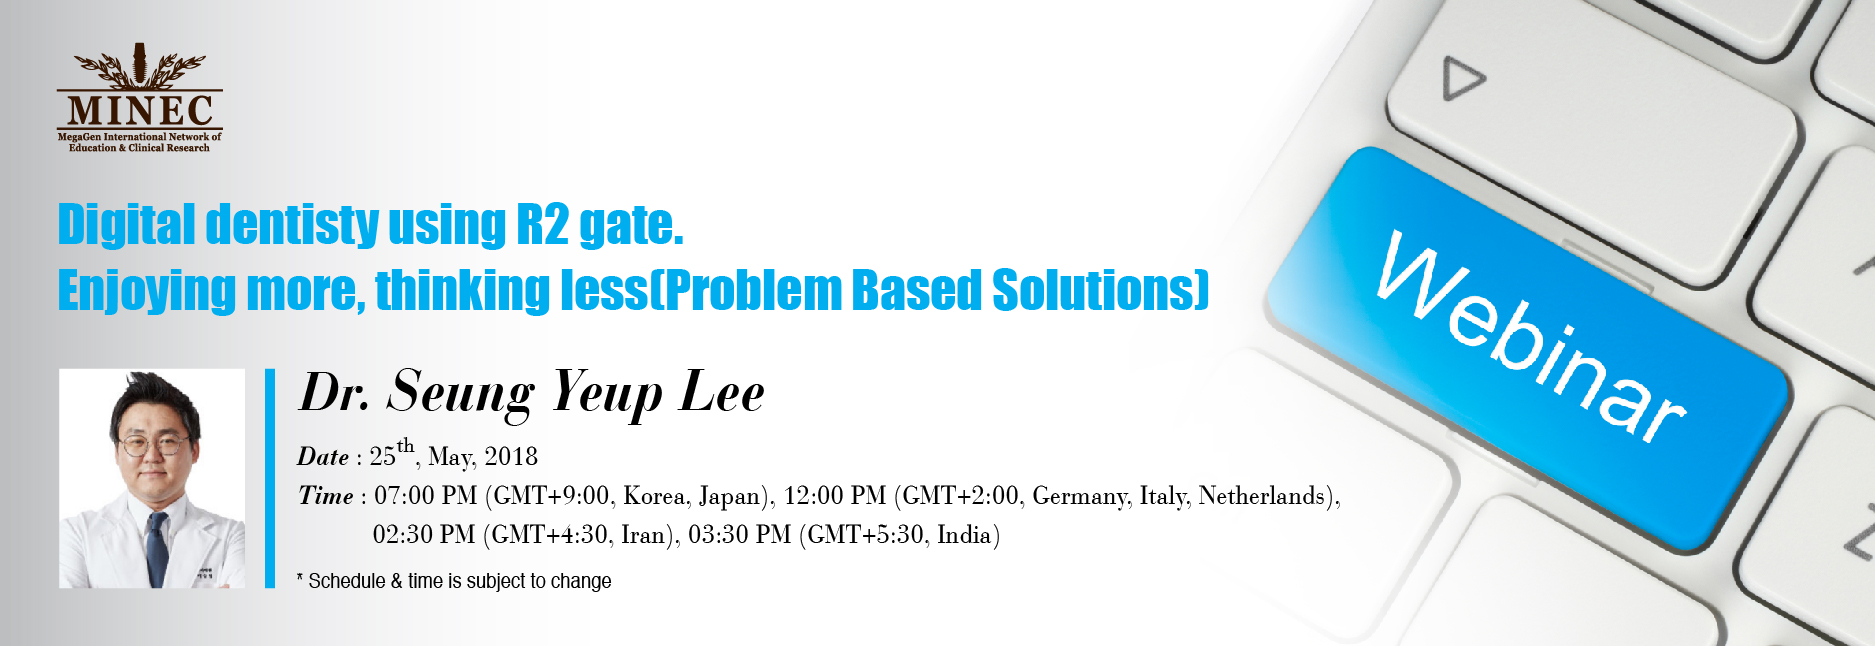 MINEC webinar - Dr. Seung Yeup Lee